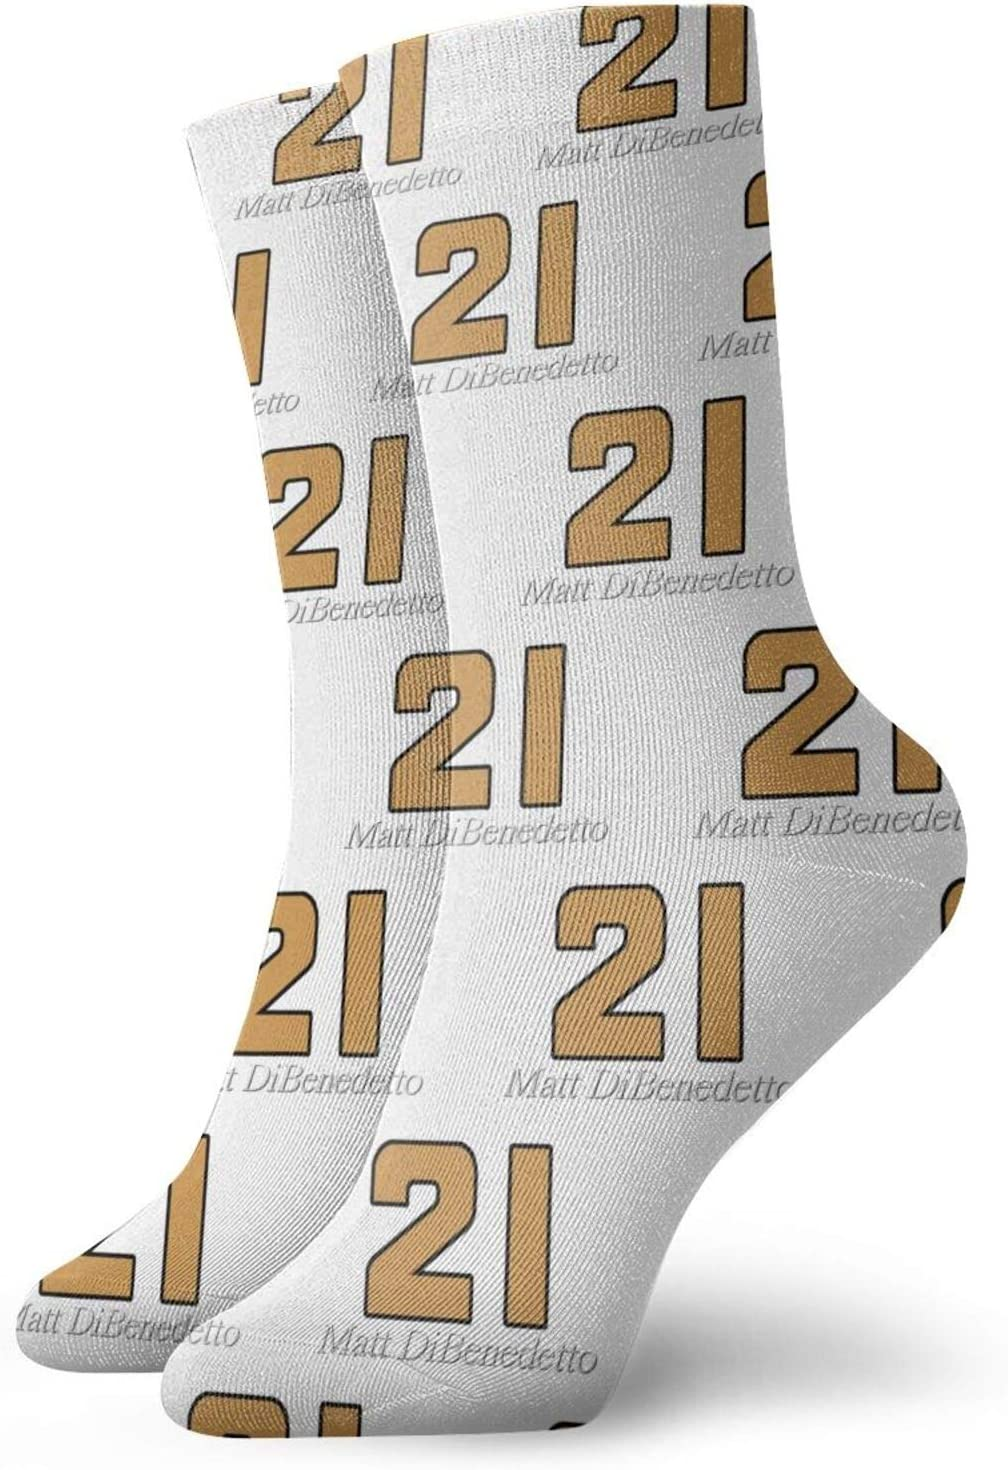 Gerneric Matt Dibenedetto Socks Moisture Wicking Heavy Cushion Crew Socks for Men and Women